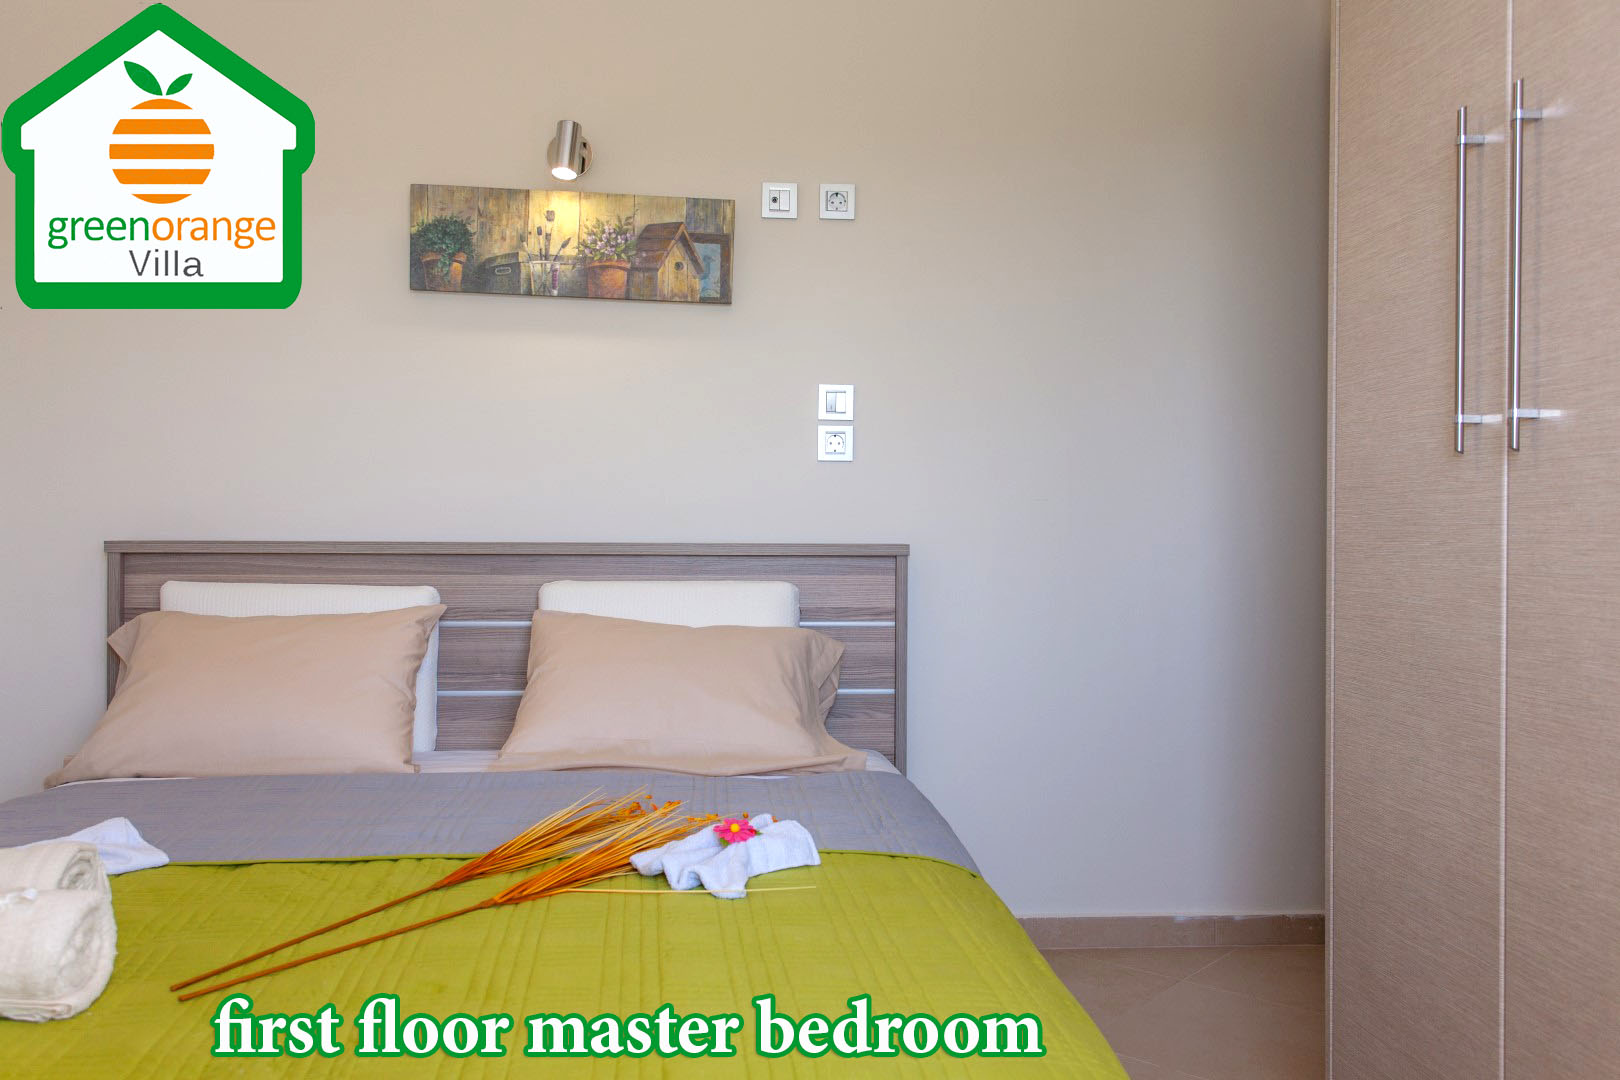 family bedroom for rent green orange villa hania crete greece